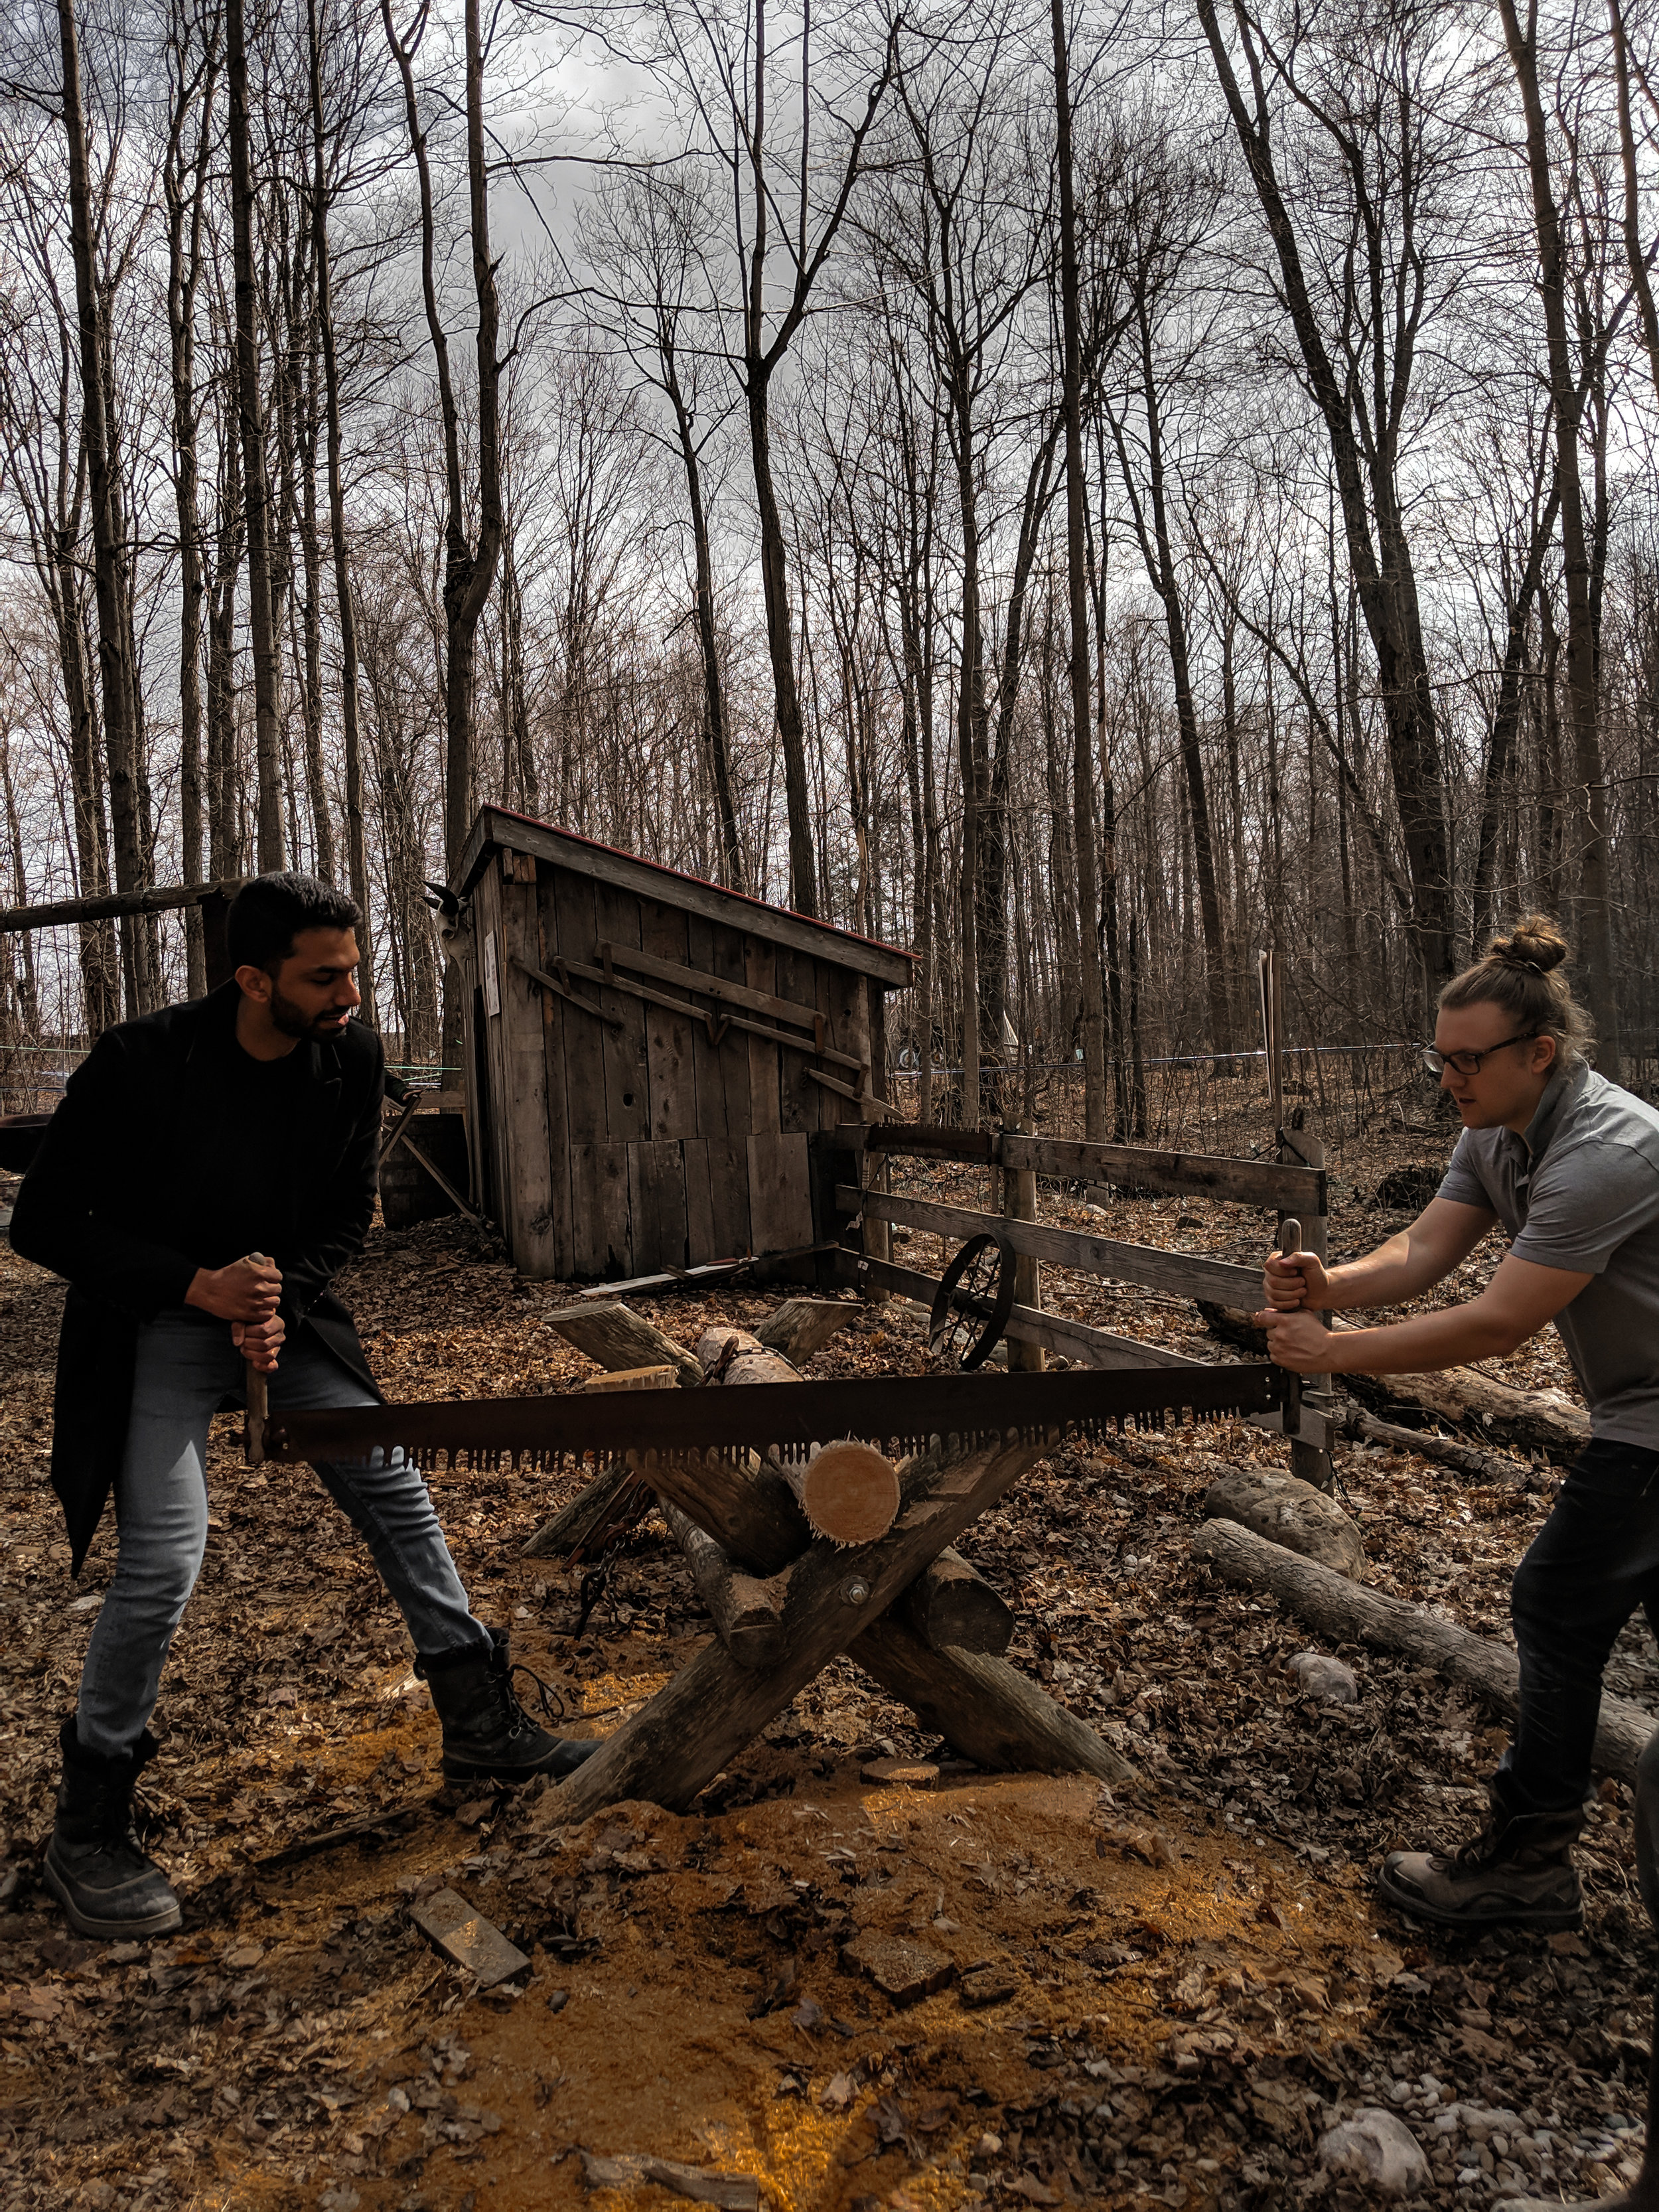 Sawing and branding logs